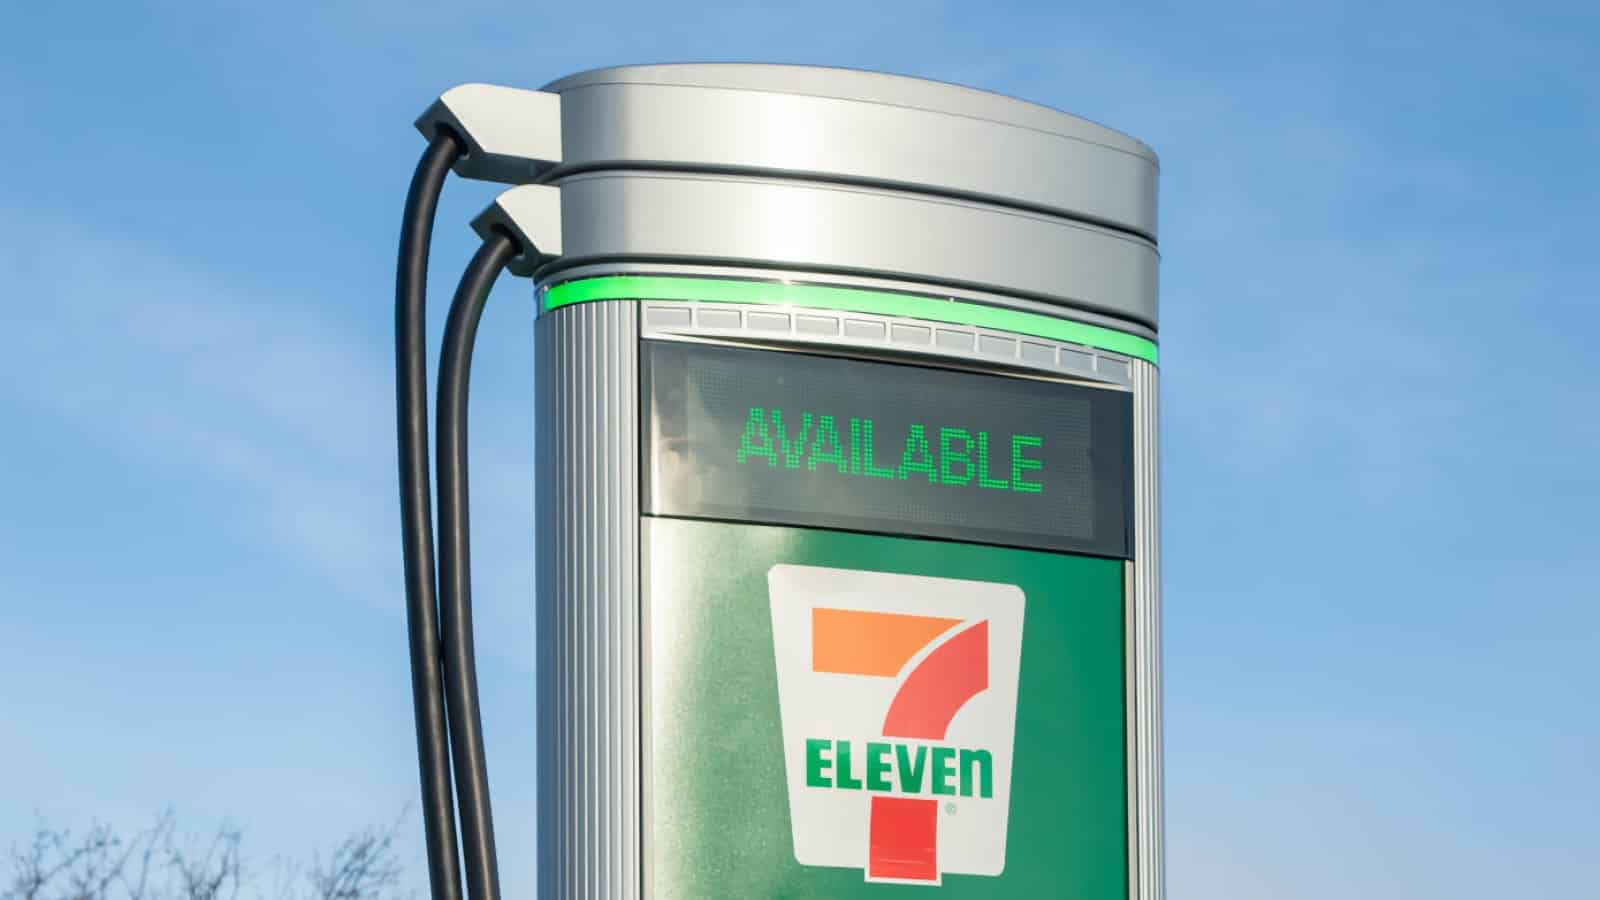 7-eleven electric vehicle charger